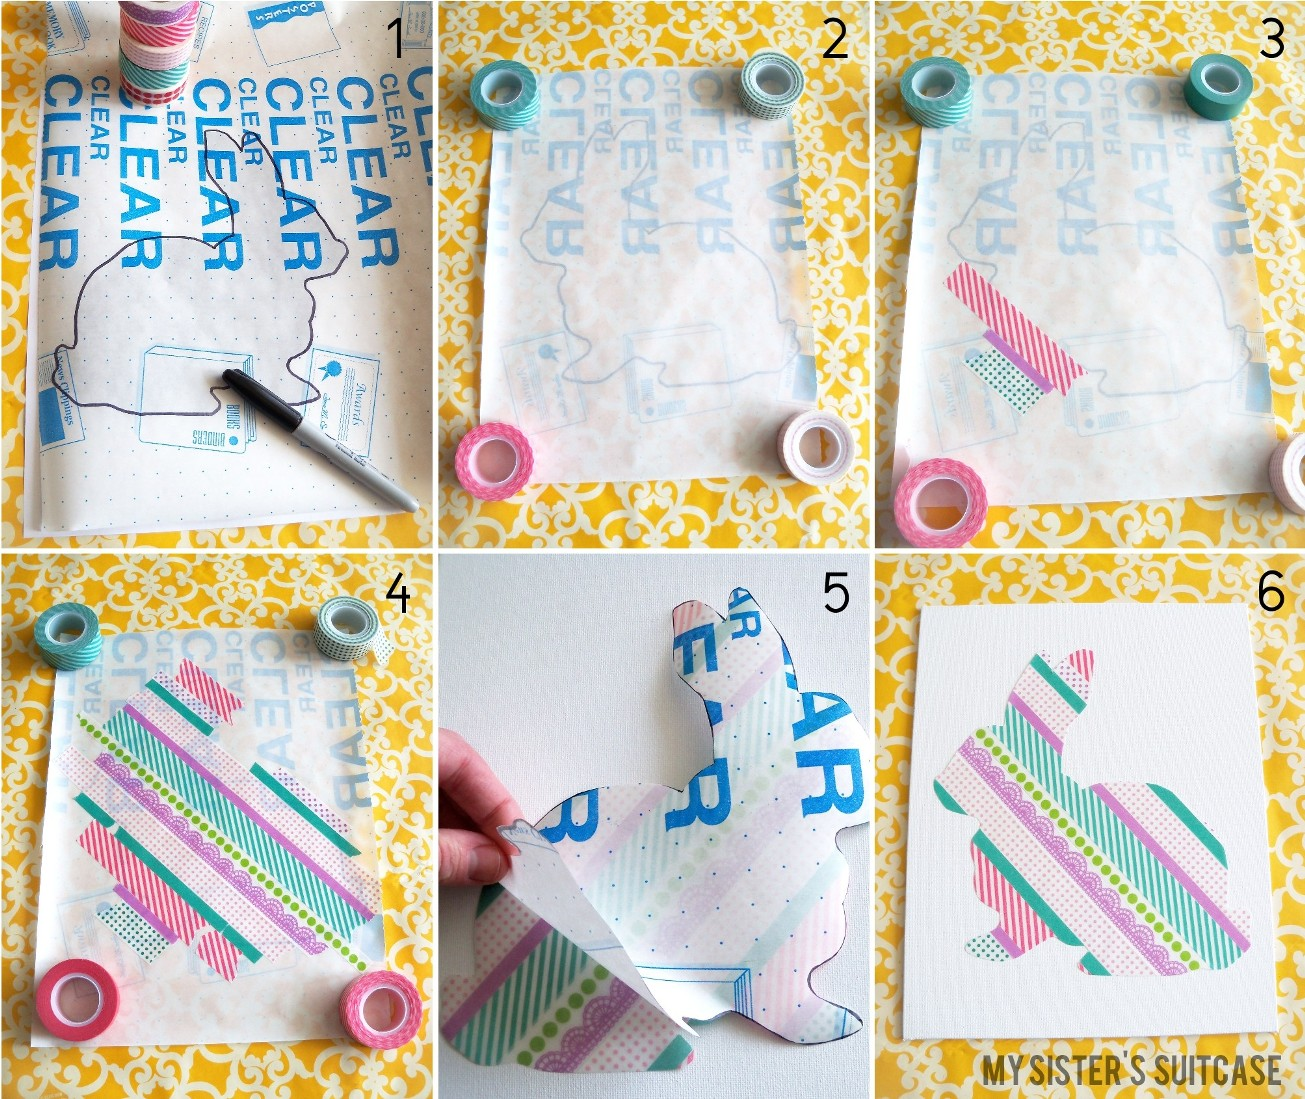 Amato Washi Tape Silhouette Art {Tutorial} - My Sister's Suitcase  YL03